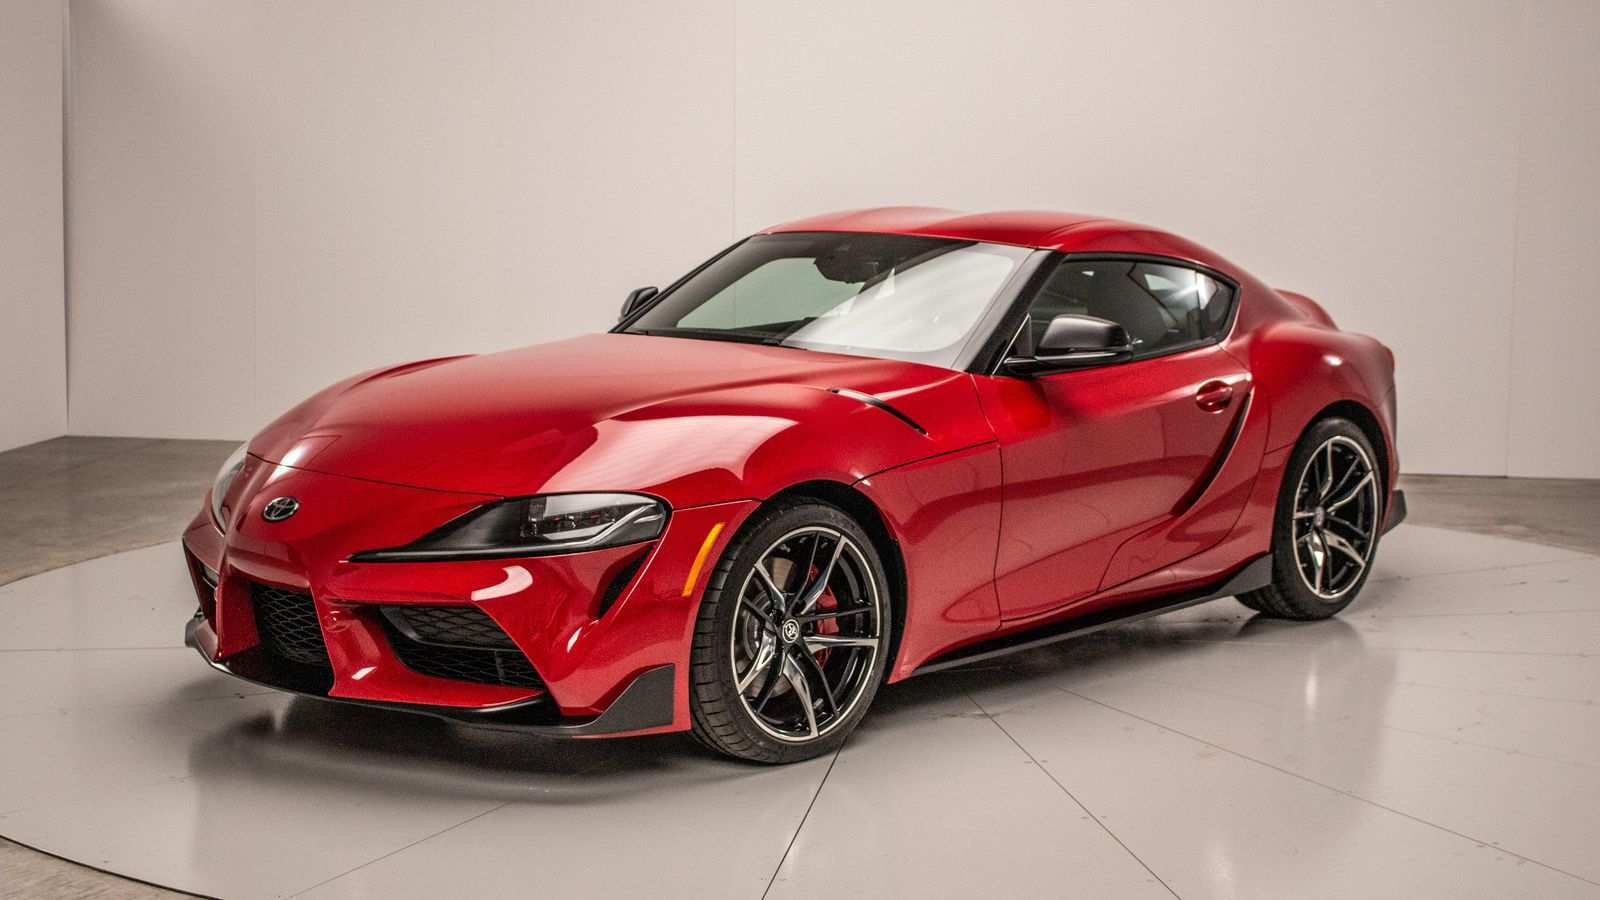 18 All New 2020 Toyota Supra Price Configurations by 2020 Toyota Supra Price